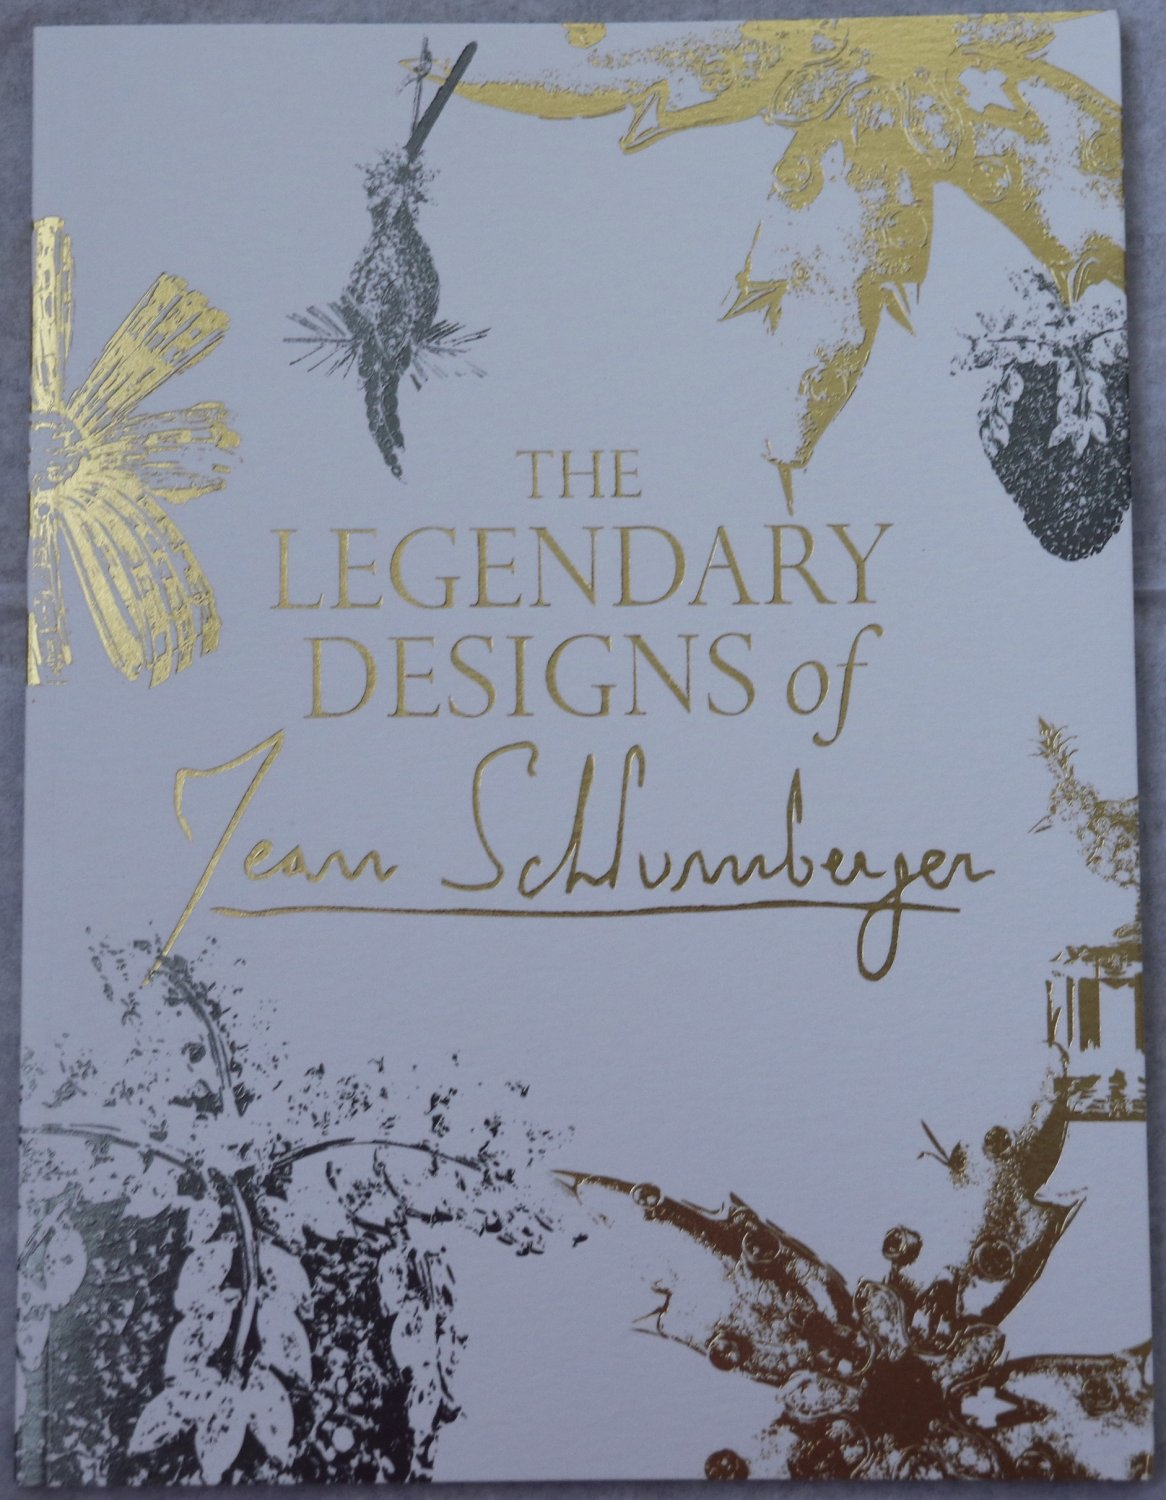 Tiffany & Co Catalog 2019 Limited Edition Jean Schlumberger Legendary Designs